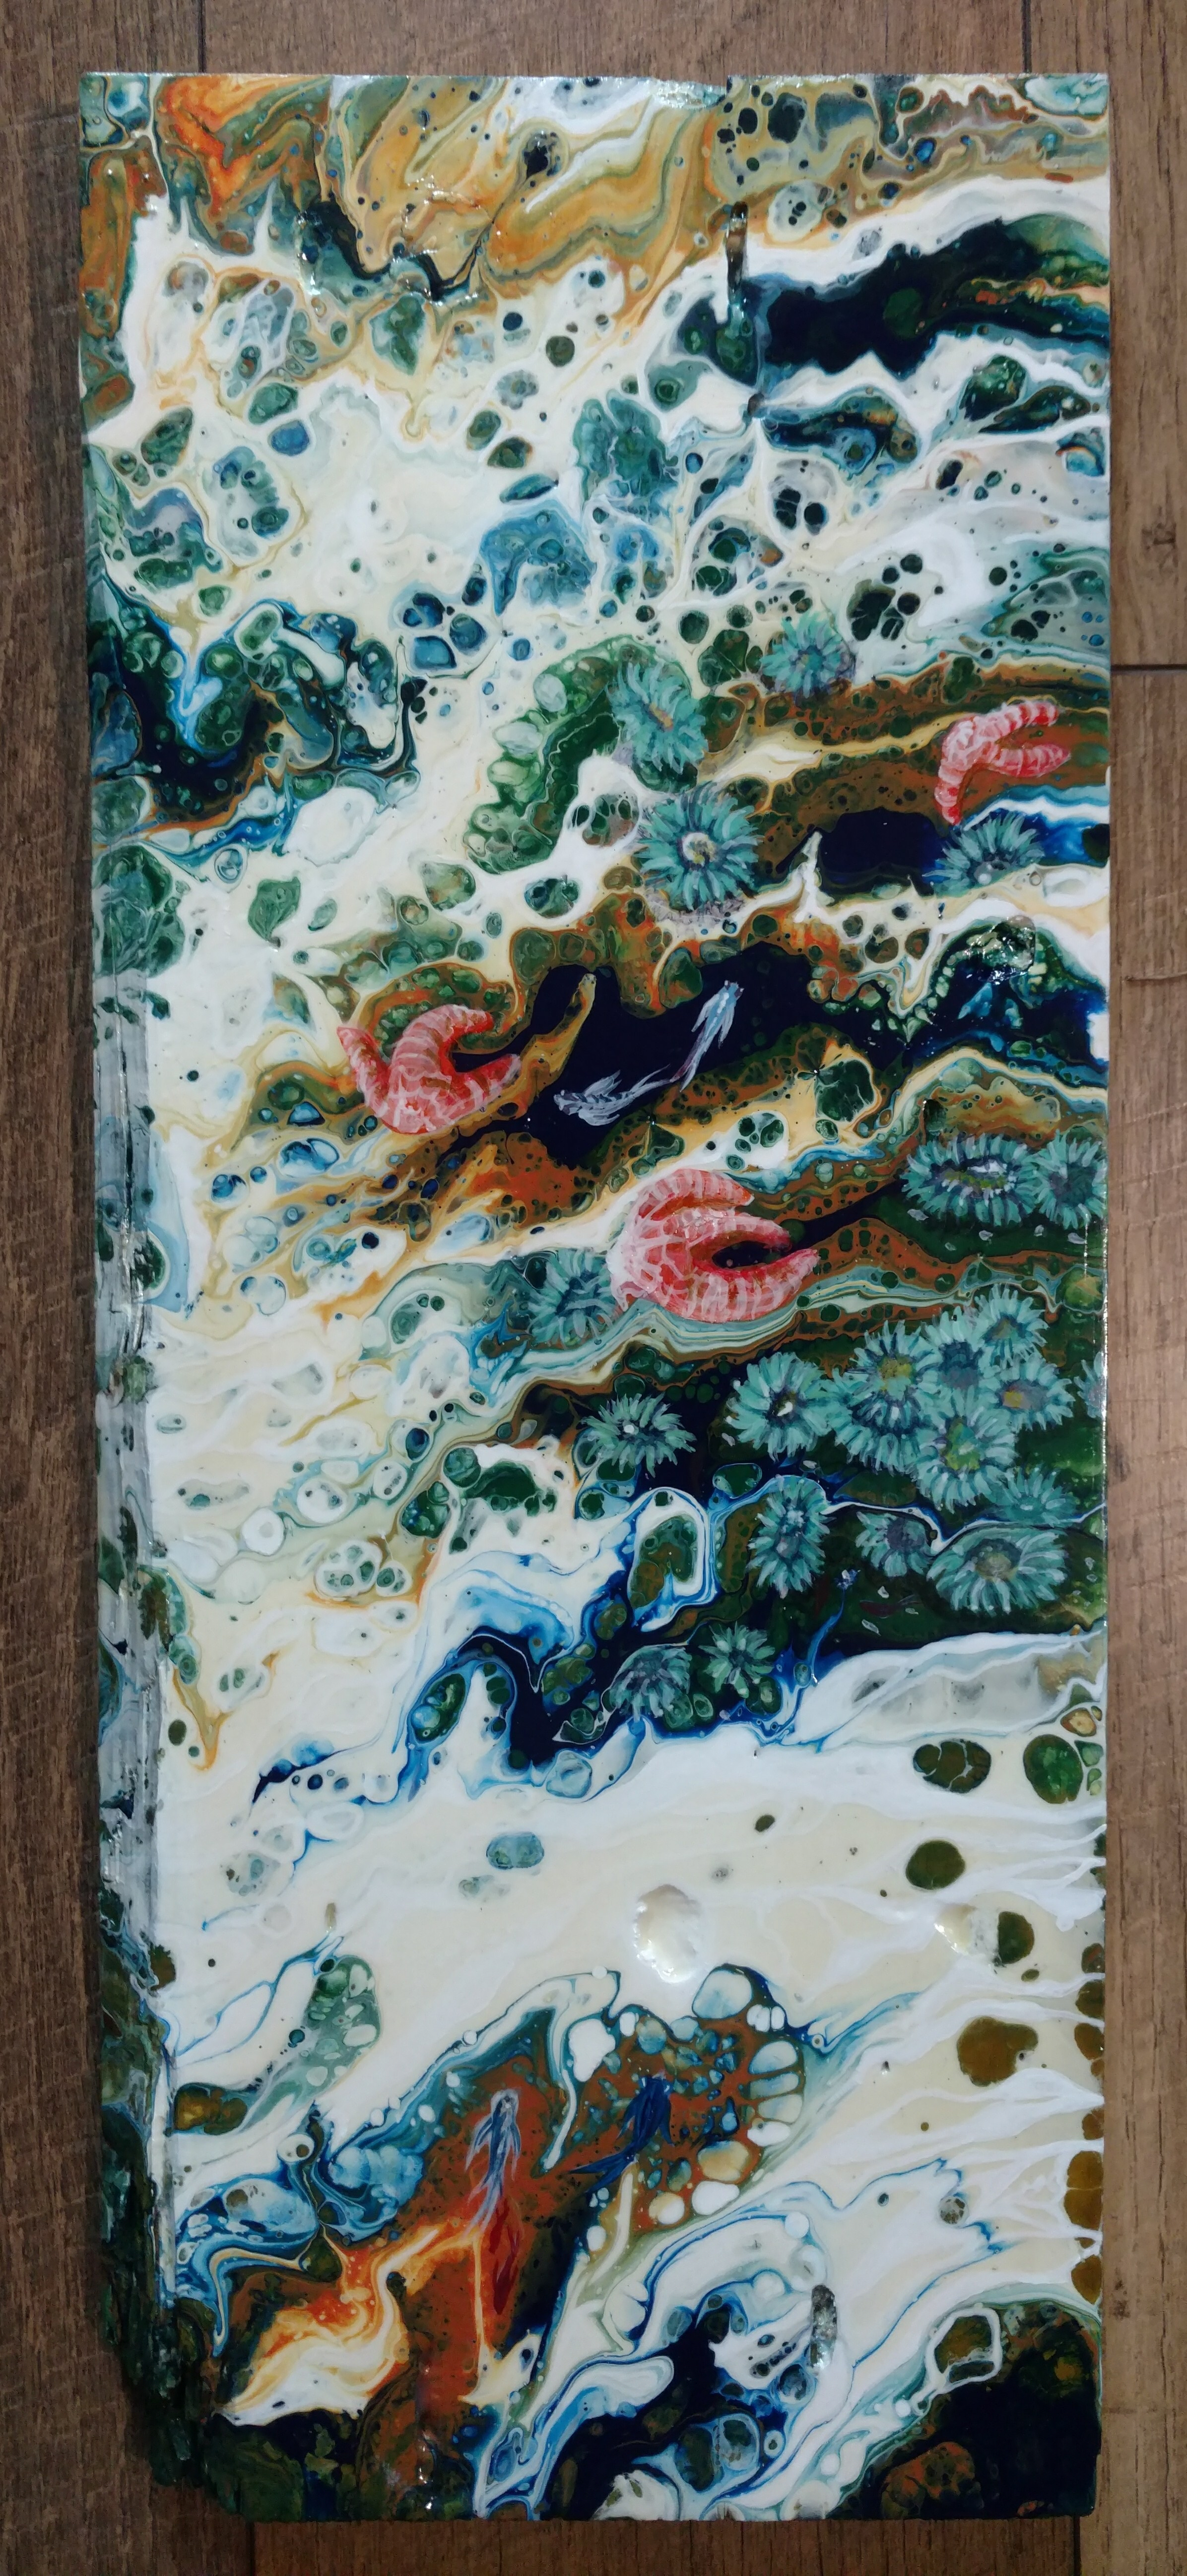 This piece is an acrylic pour and the design is completed by adding sea creatures and foam.